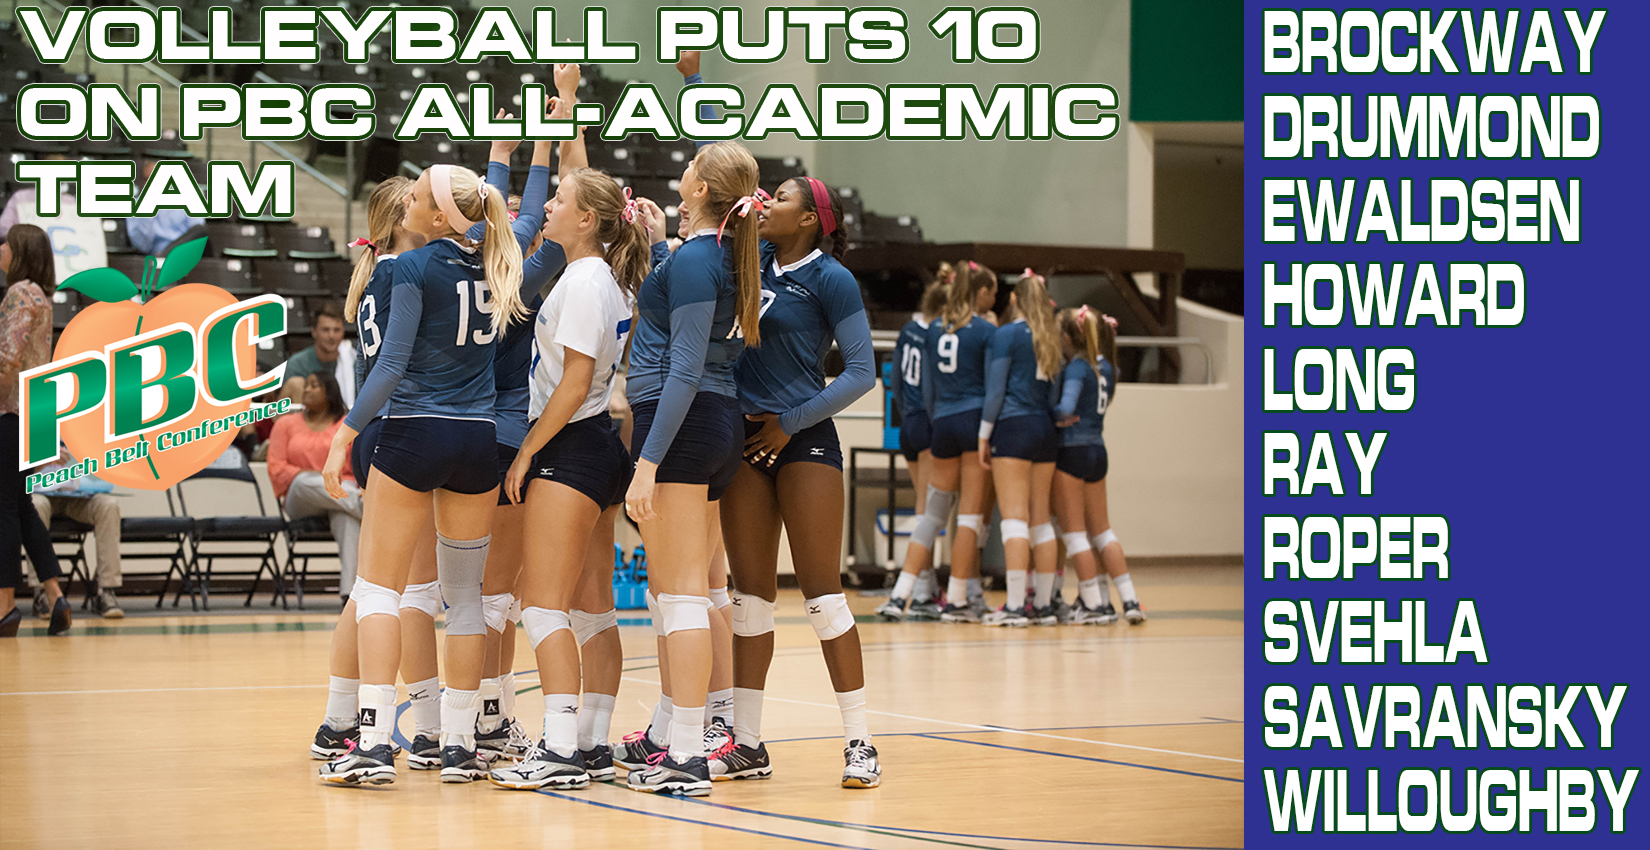 Bobcat Volleyball Puts 10 On PBC All-Academic Team